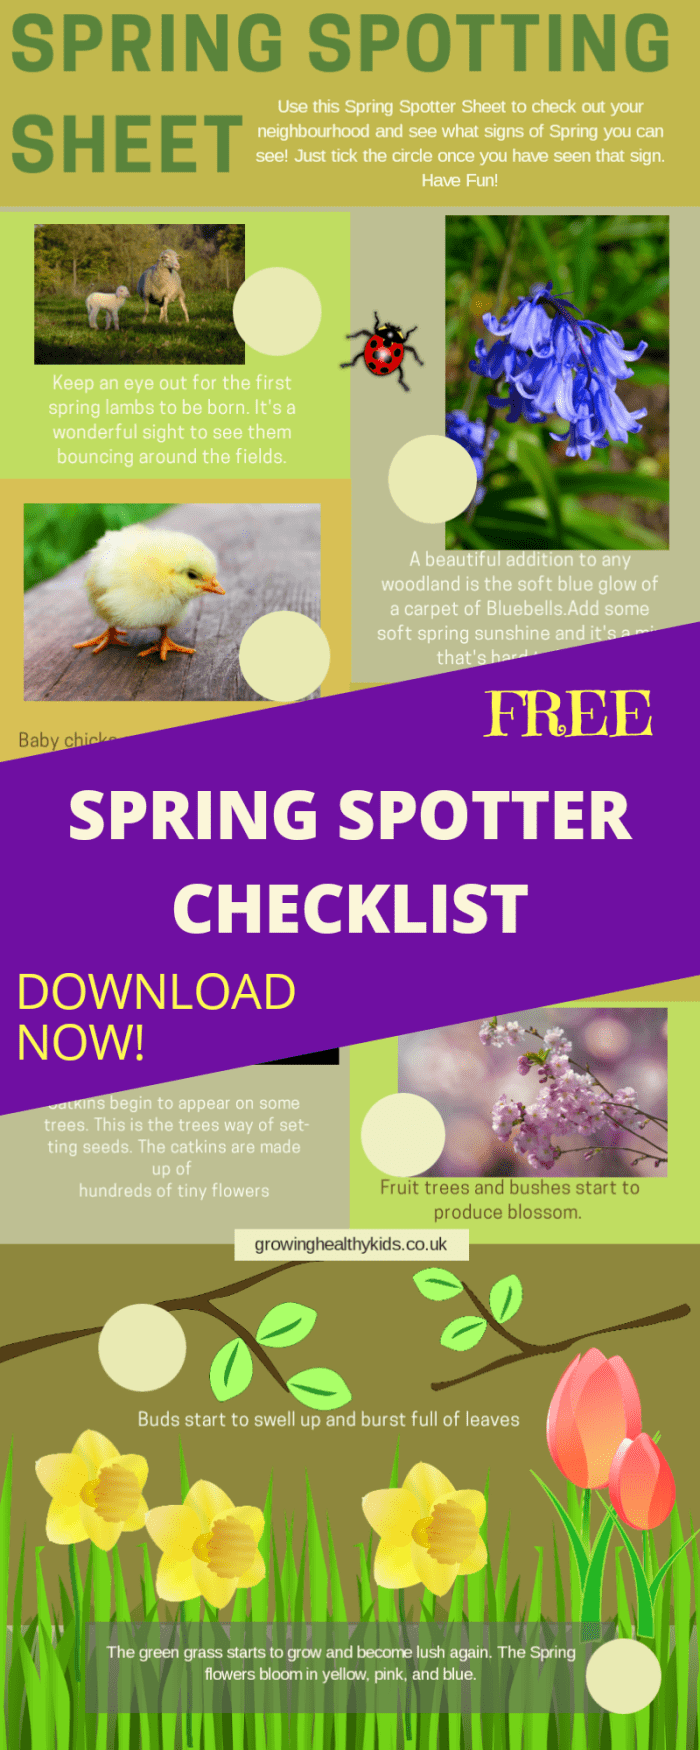 Signs of spring spotting checklist